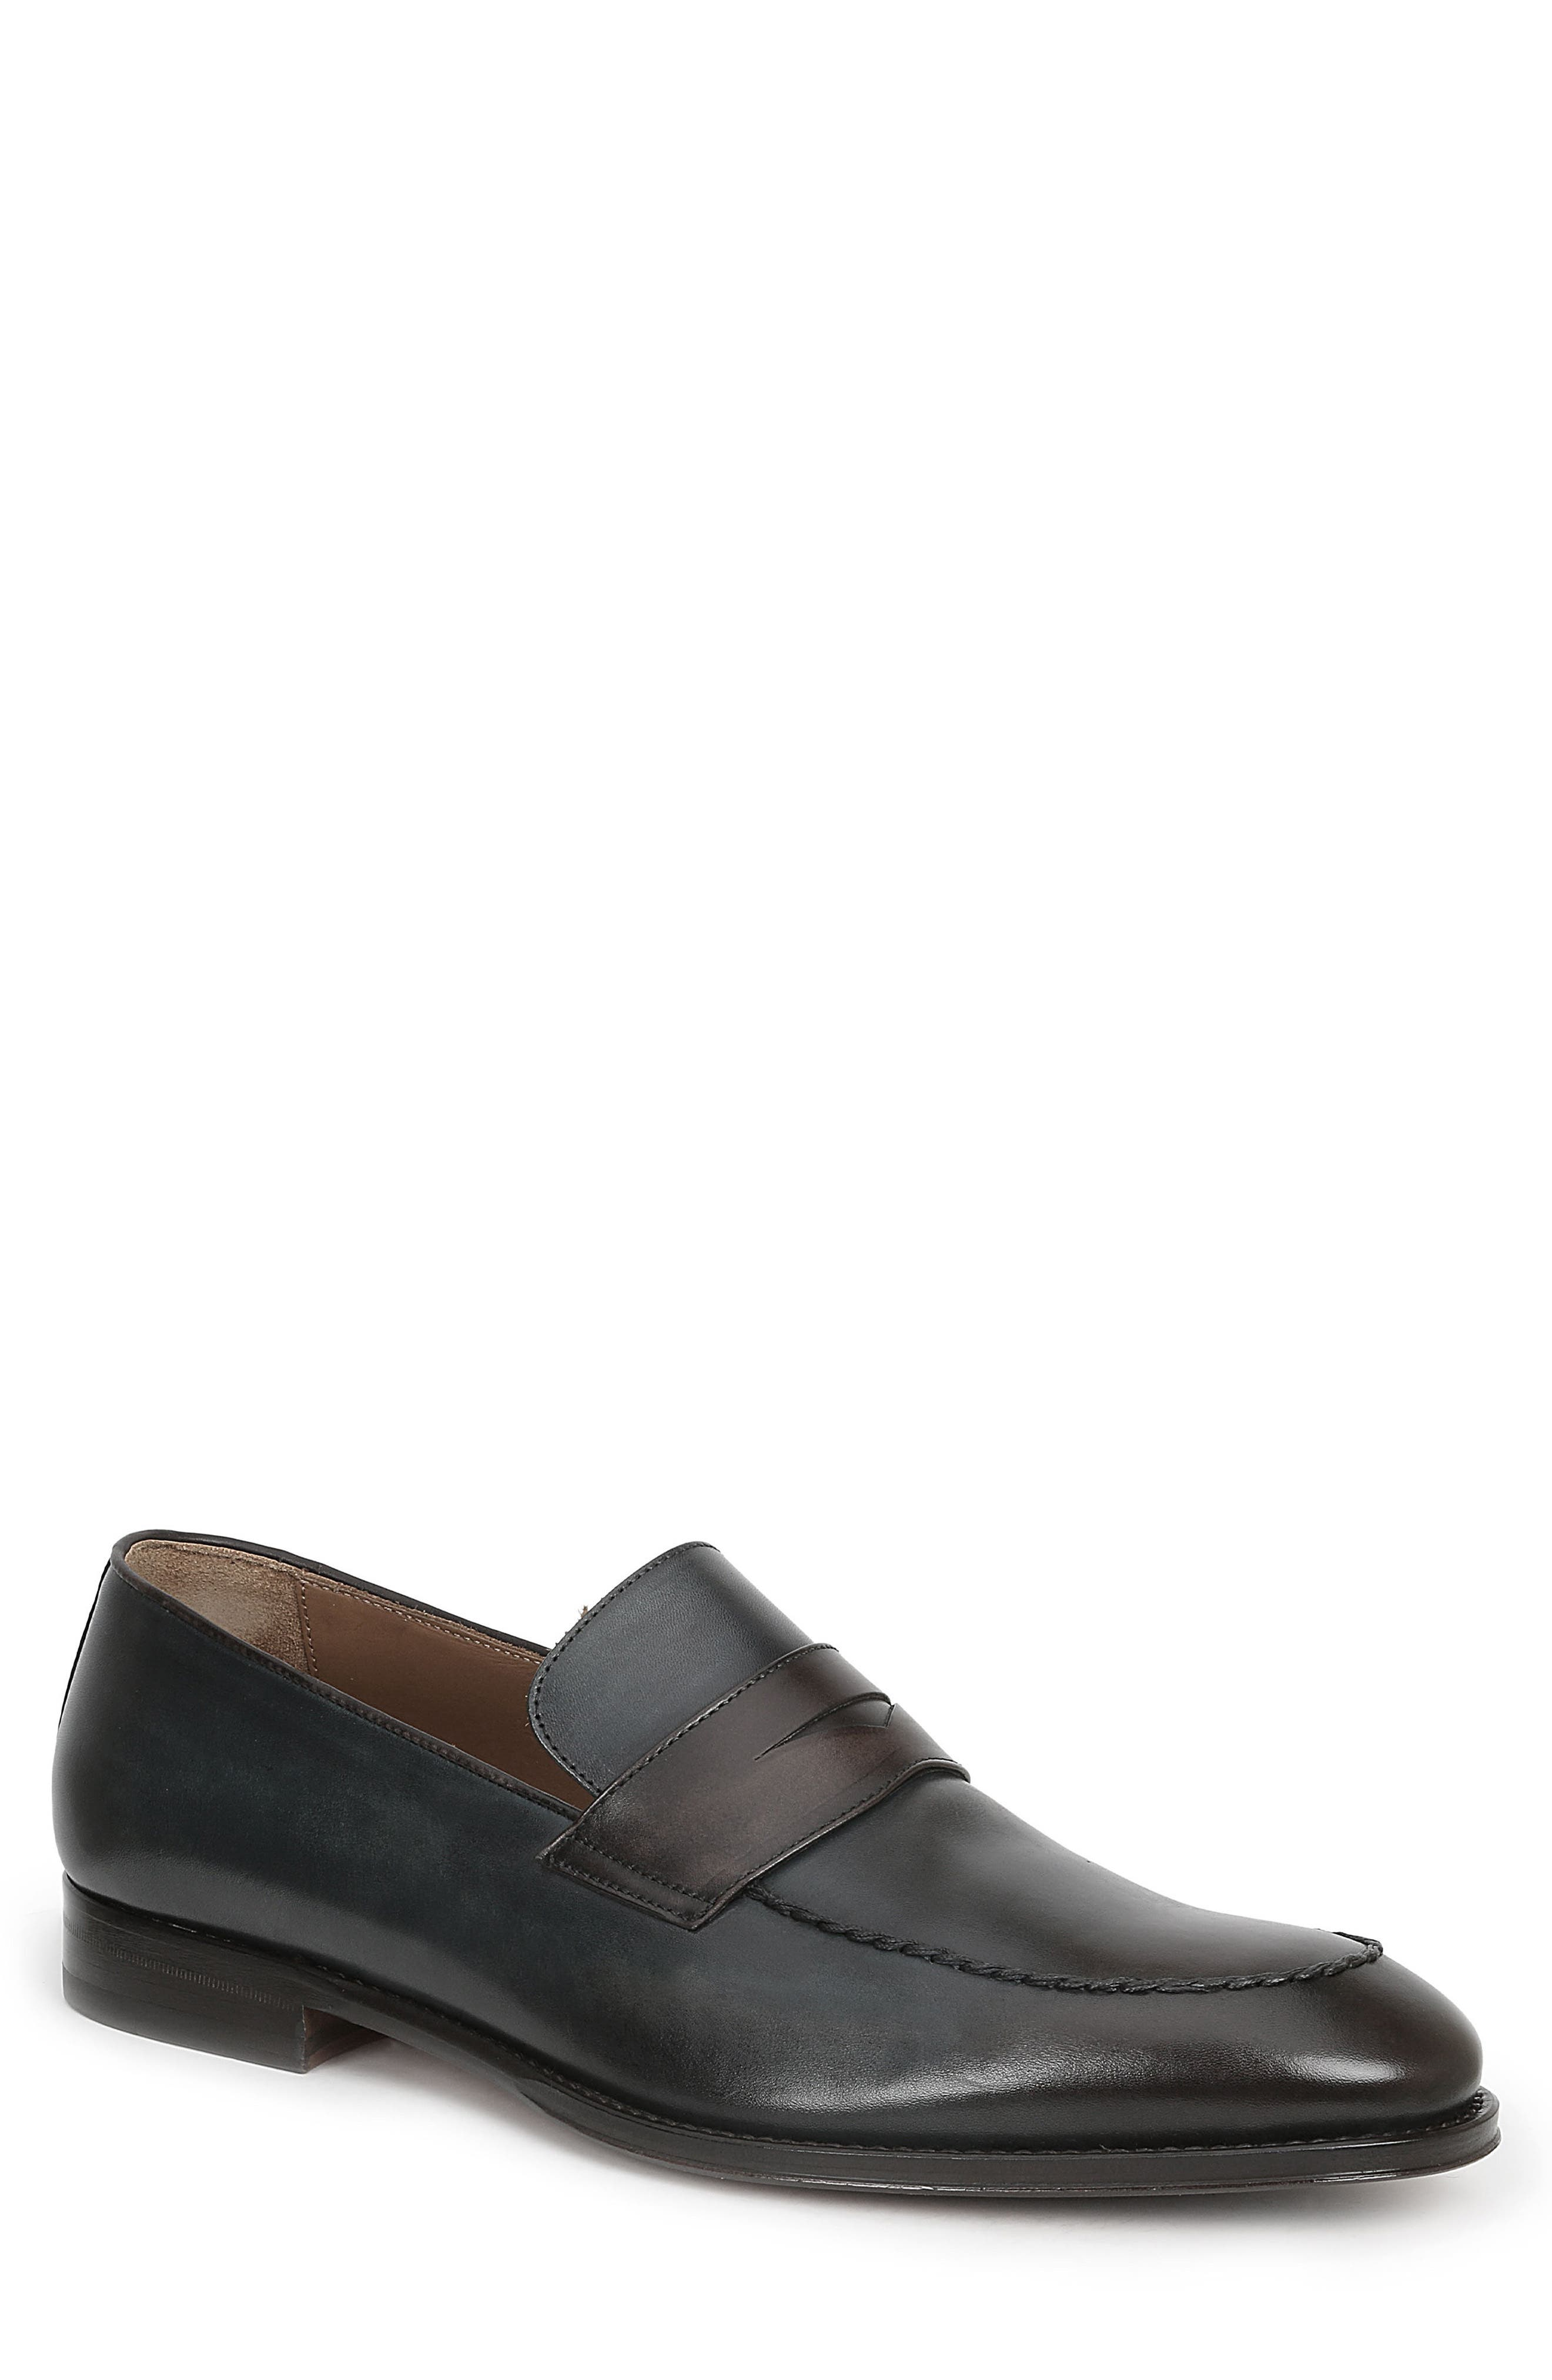 Fanetta Penny Loafer,                         Main,                         color, Blue